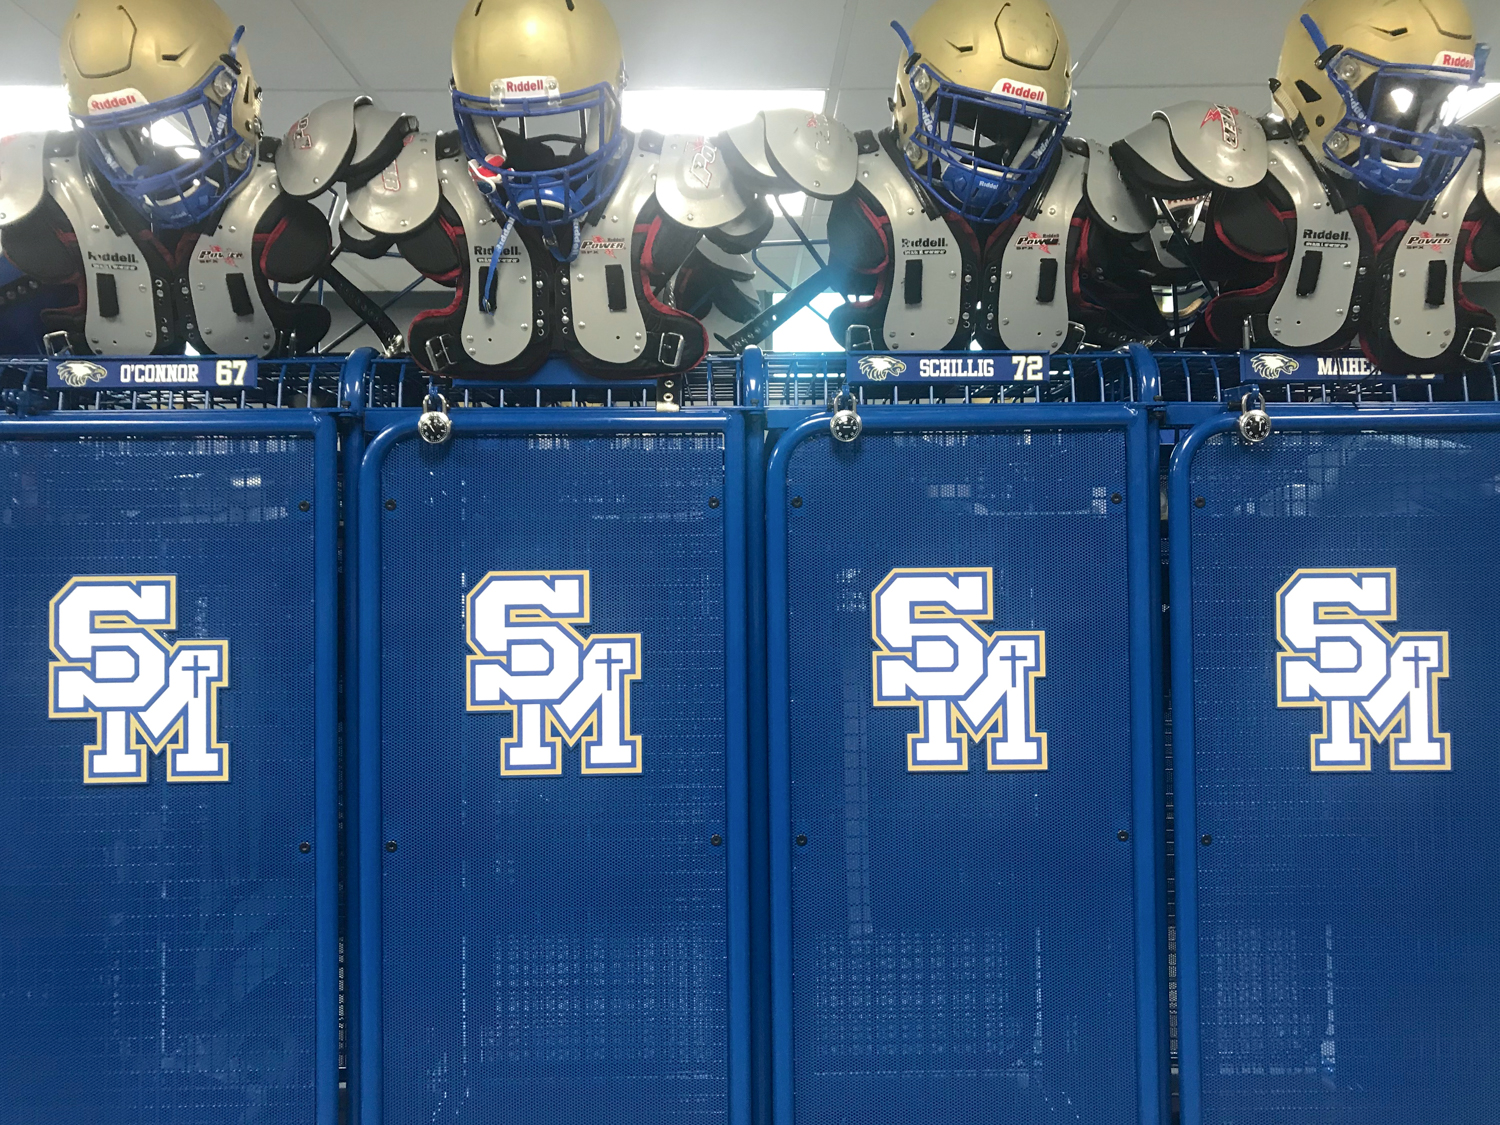 Complete with the name and number of each player, the new locker room is the best way to start the new season.